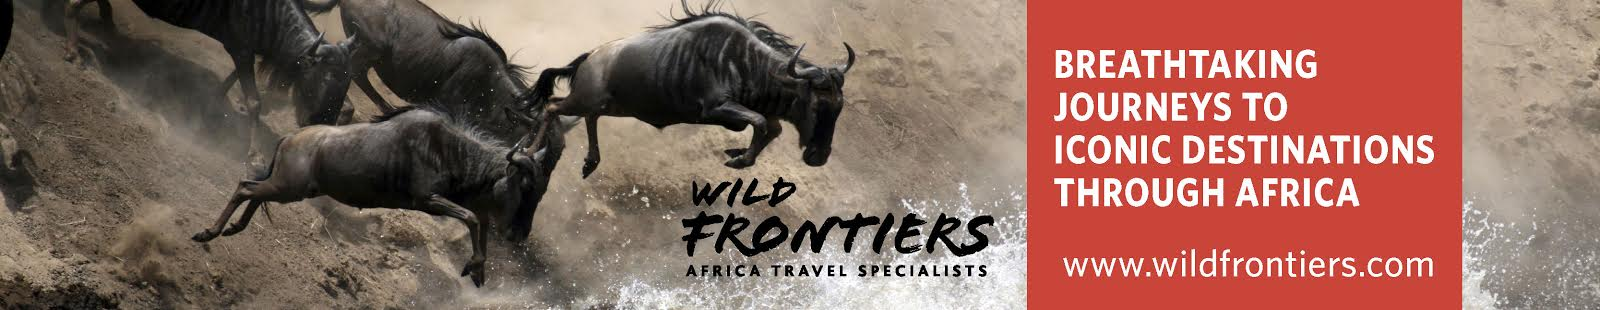 Tanzani wild frontiers